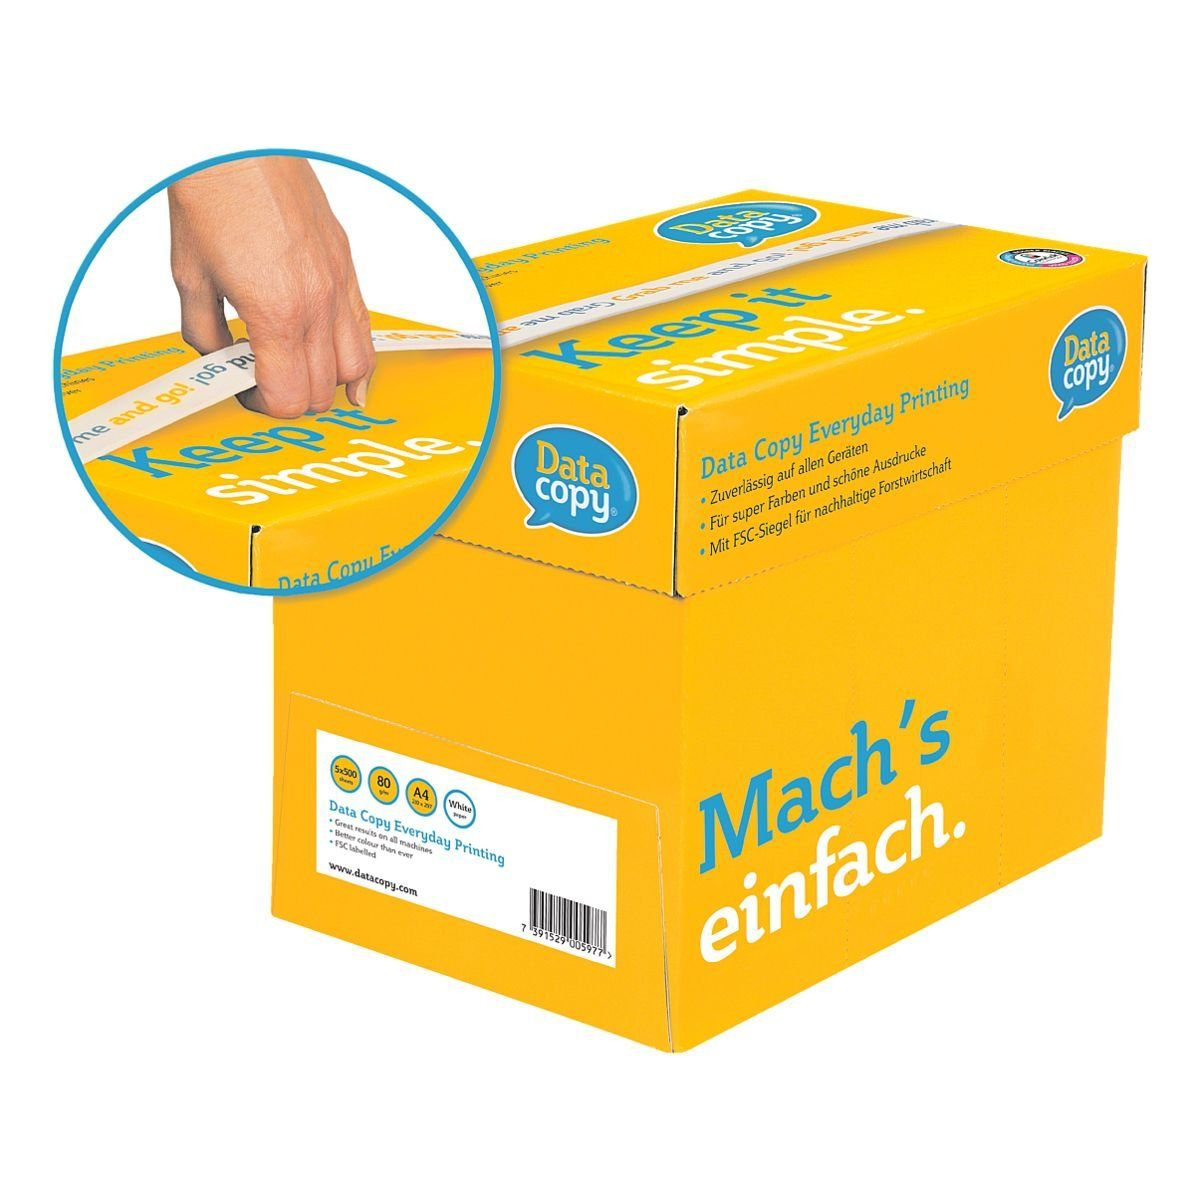 Data-Copy Grab & Go Box Multifunktionales Druckerpapier »Ever...